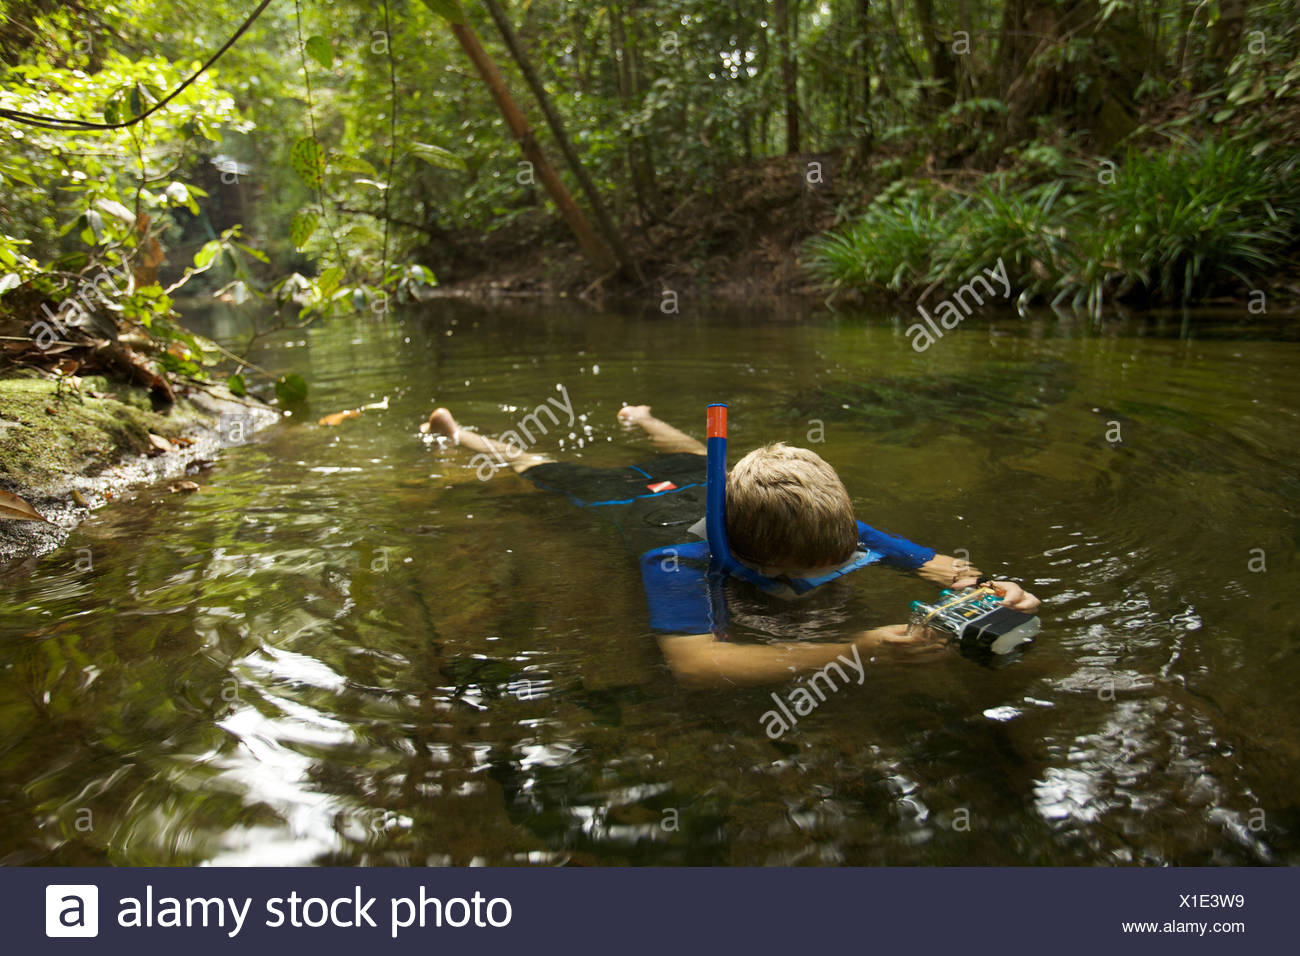 A boy snorkeling in a rain forest stream. - Stock Image